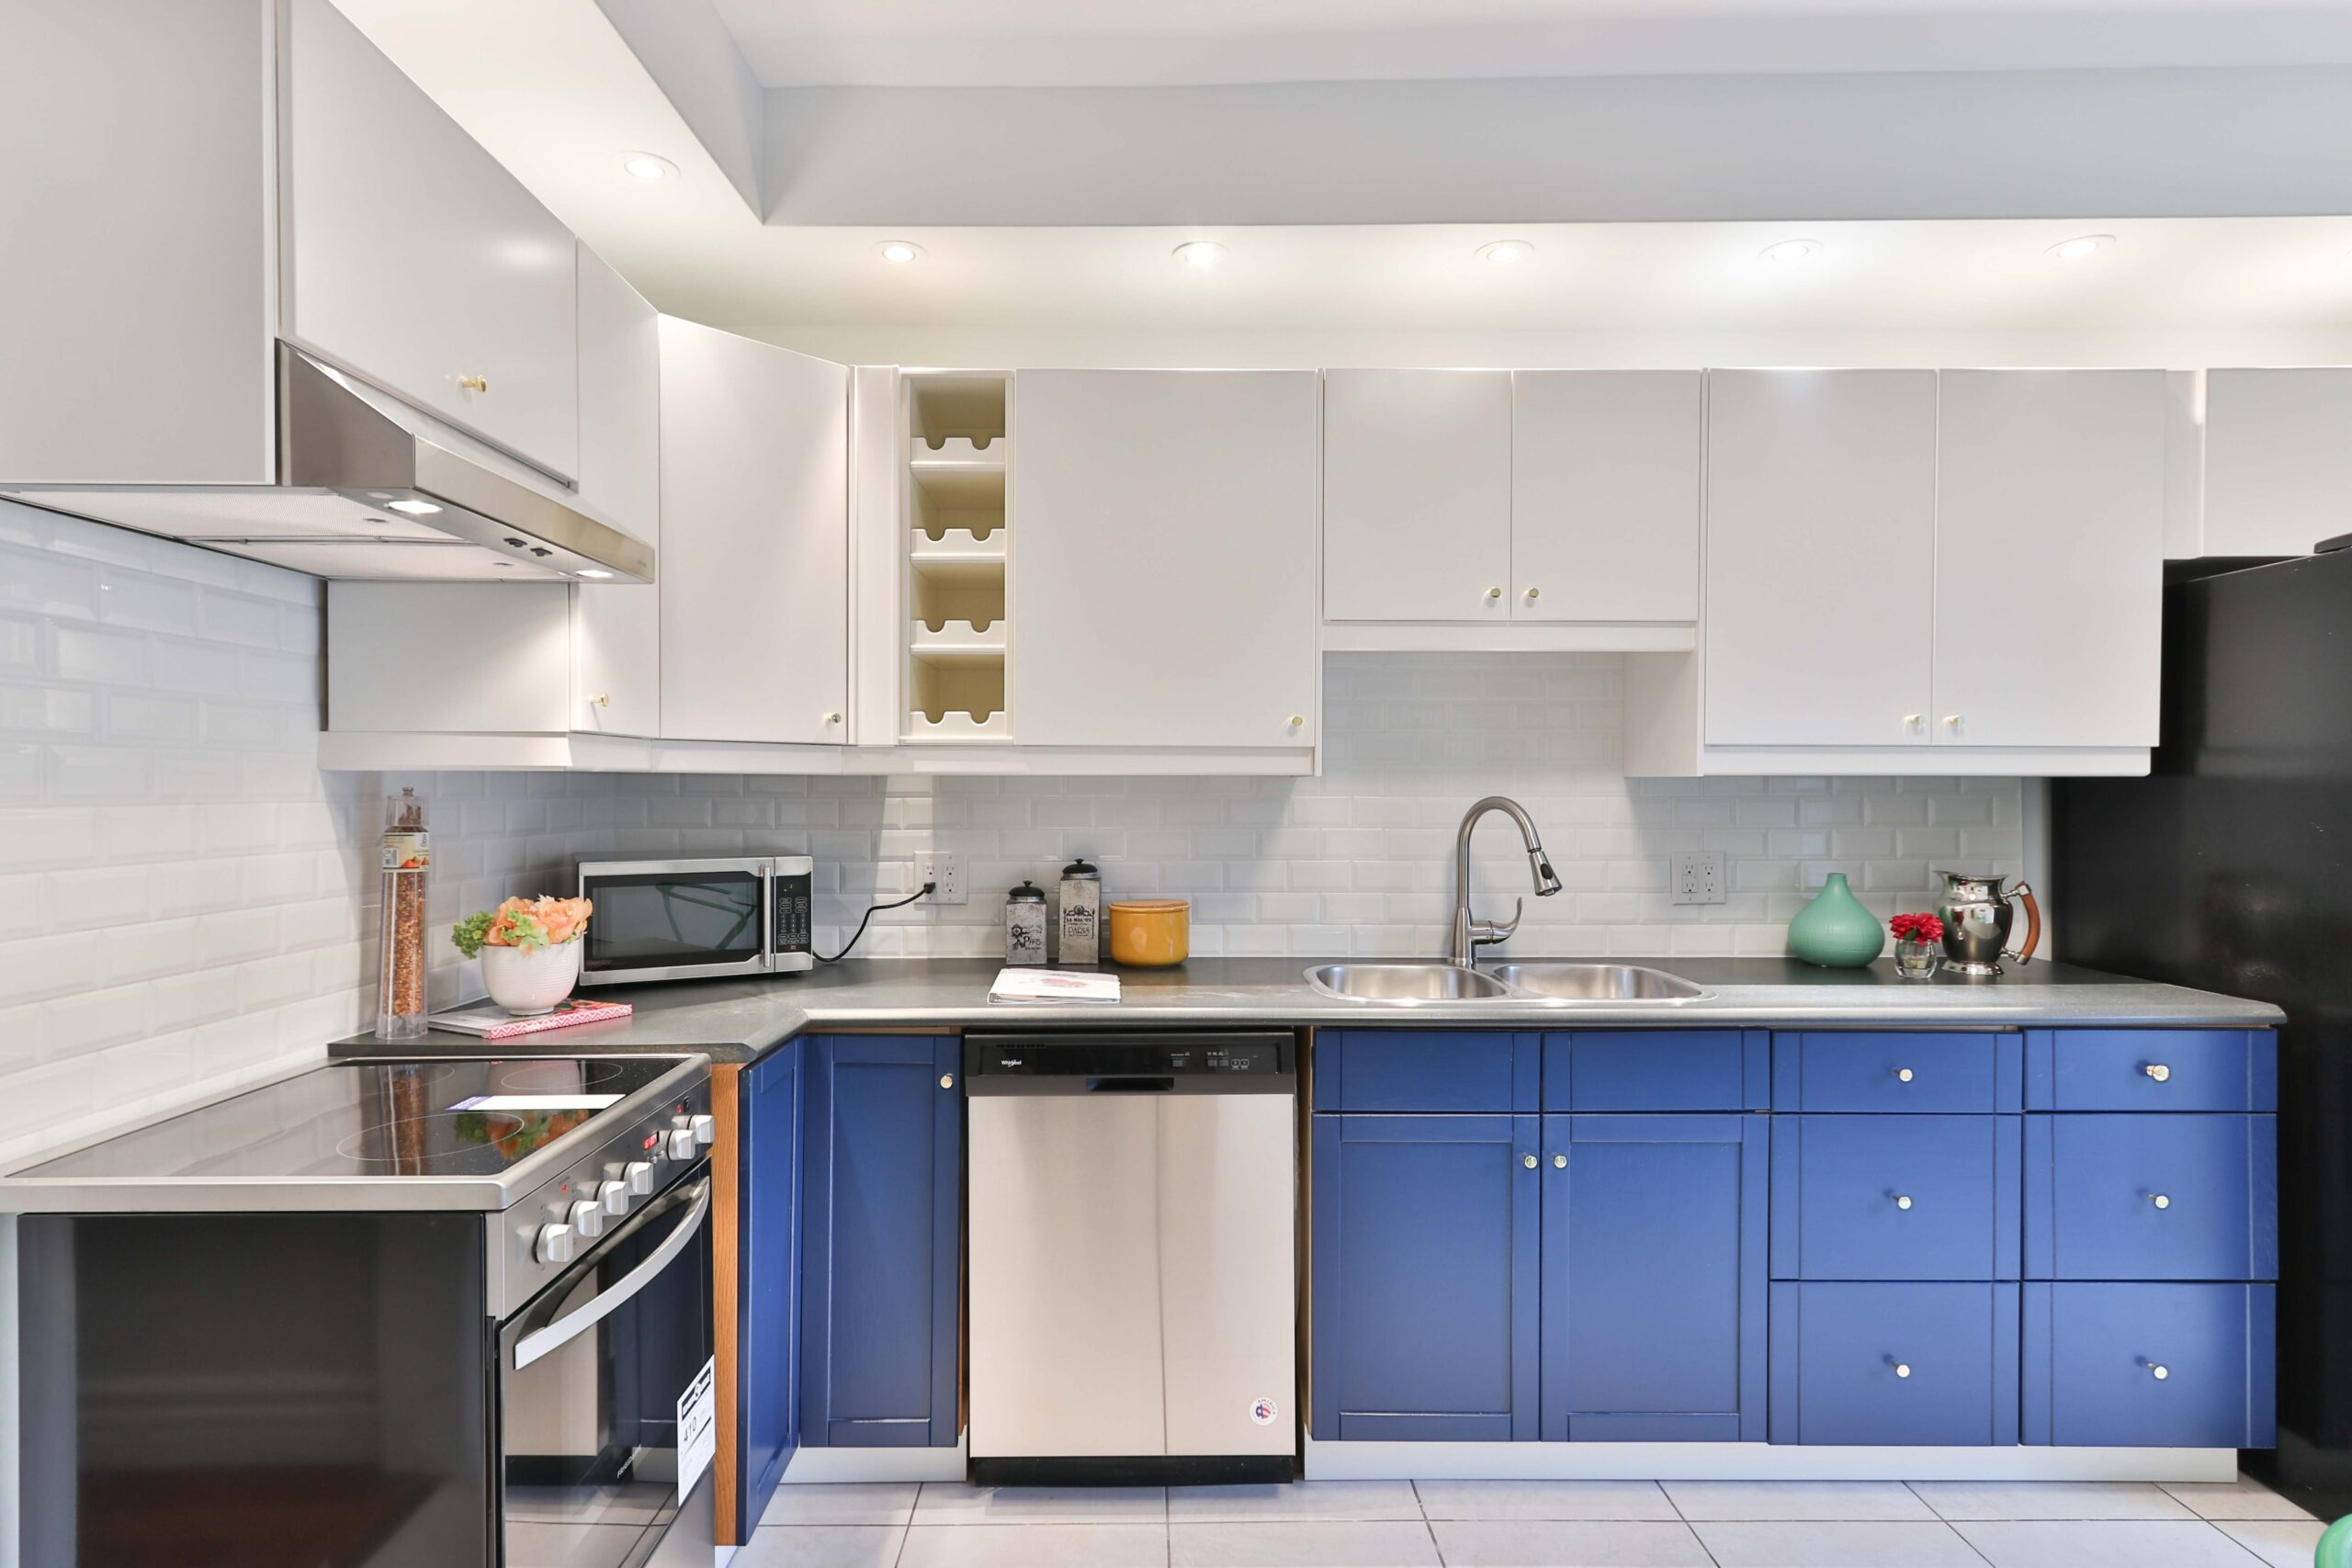 Matte PU polishing gives the ultimate modern looking kitchen cabinets